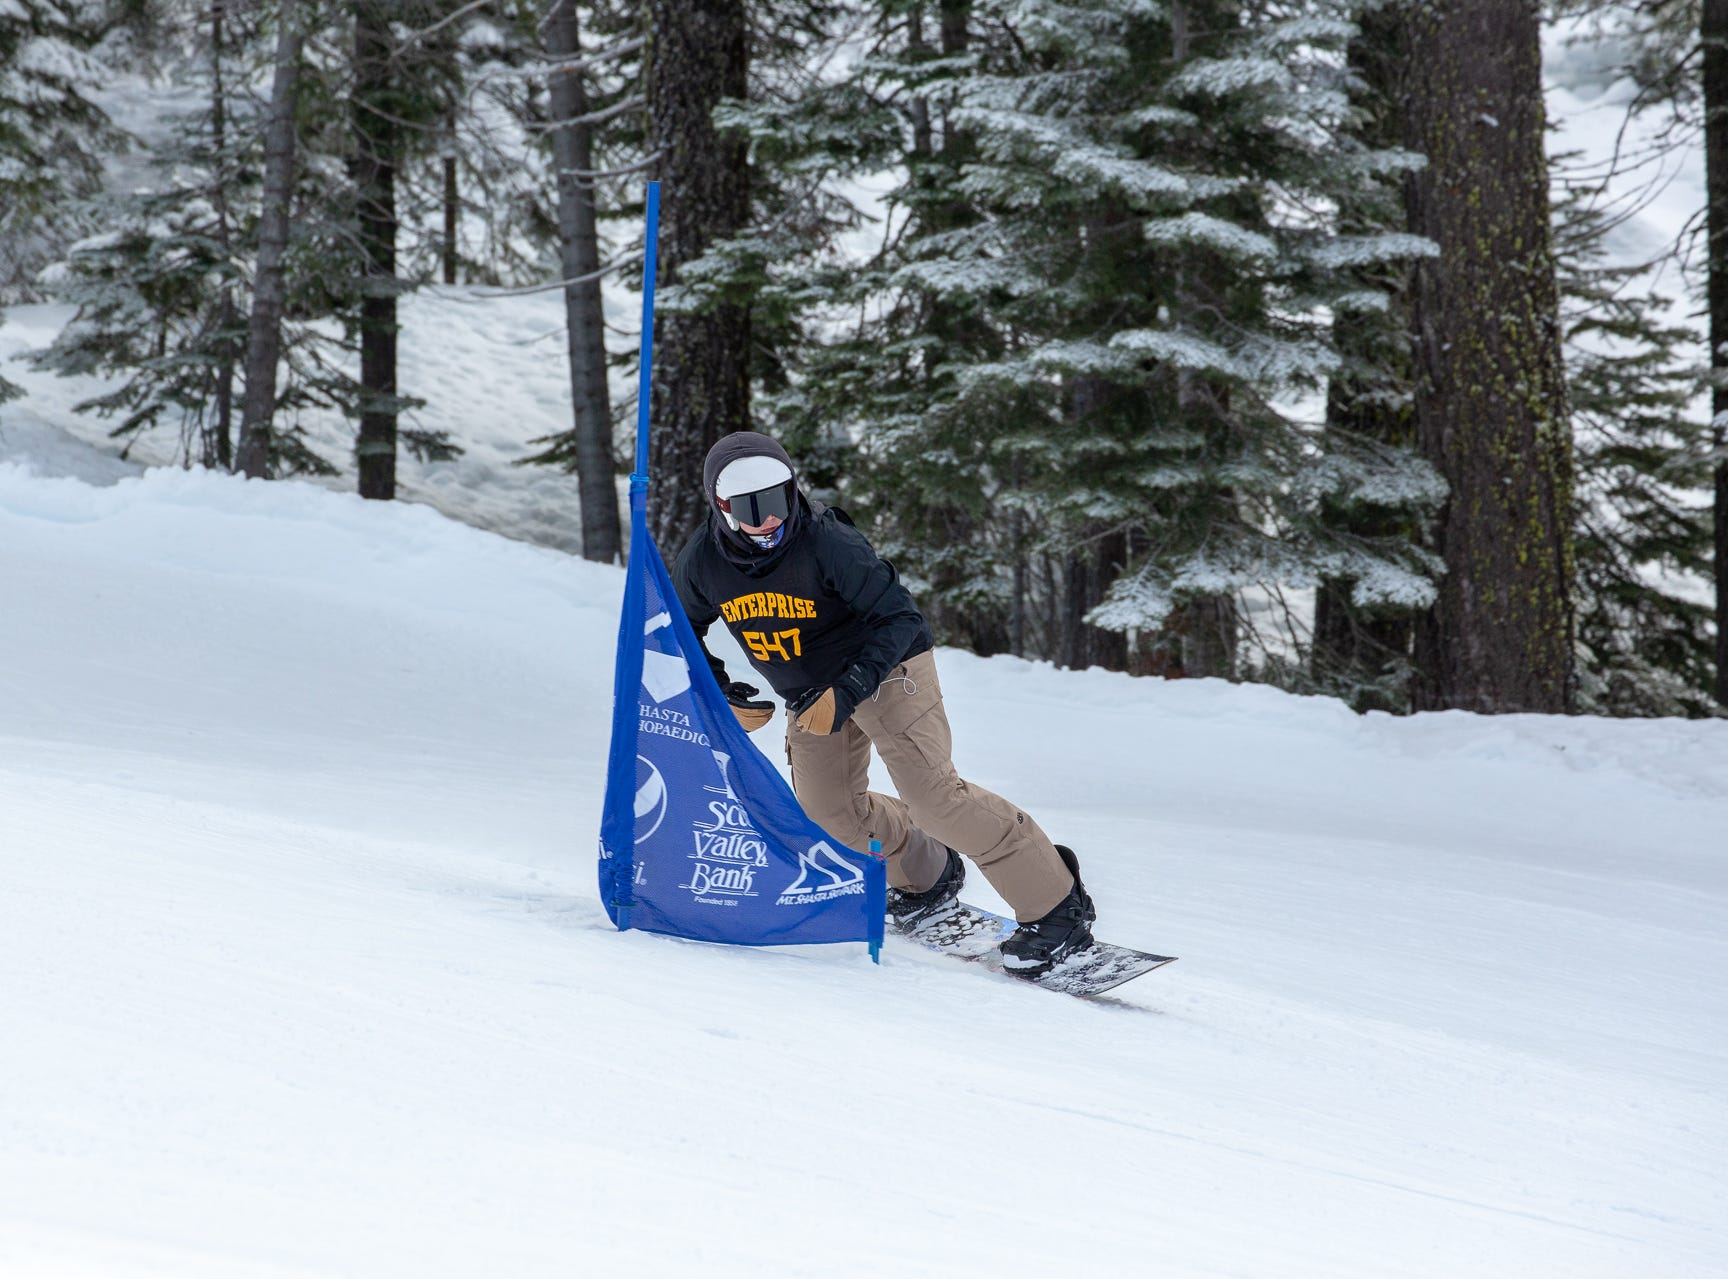 Keenan Mai of Enterprise competes in the second high school snowboard meet of 2019 on Monday, Jan. 21 at Mt. Shasta Ski Park.